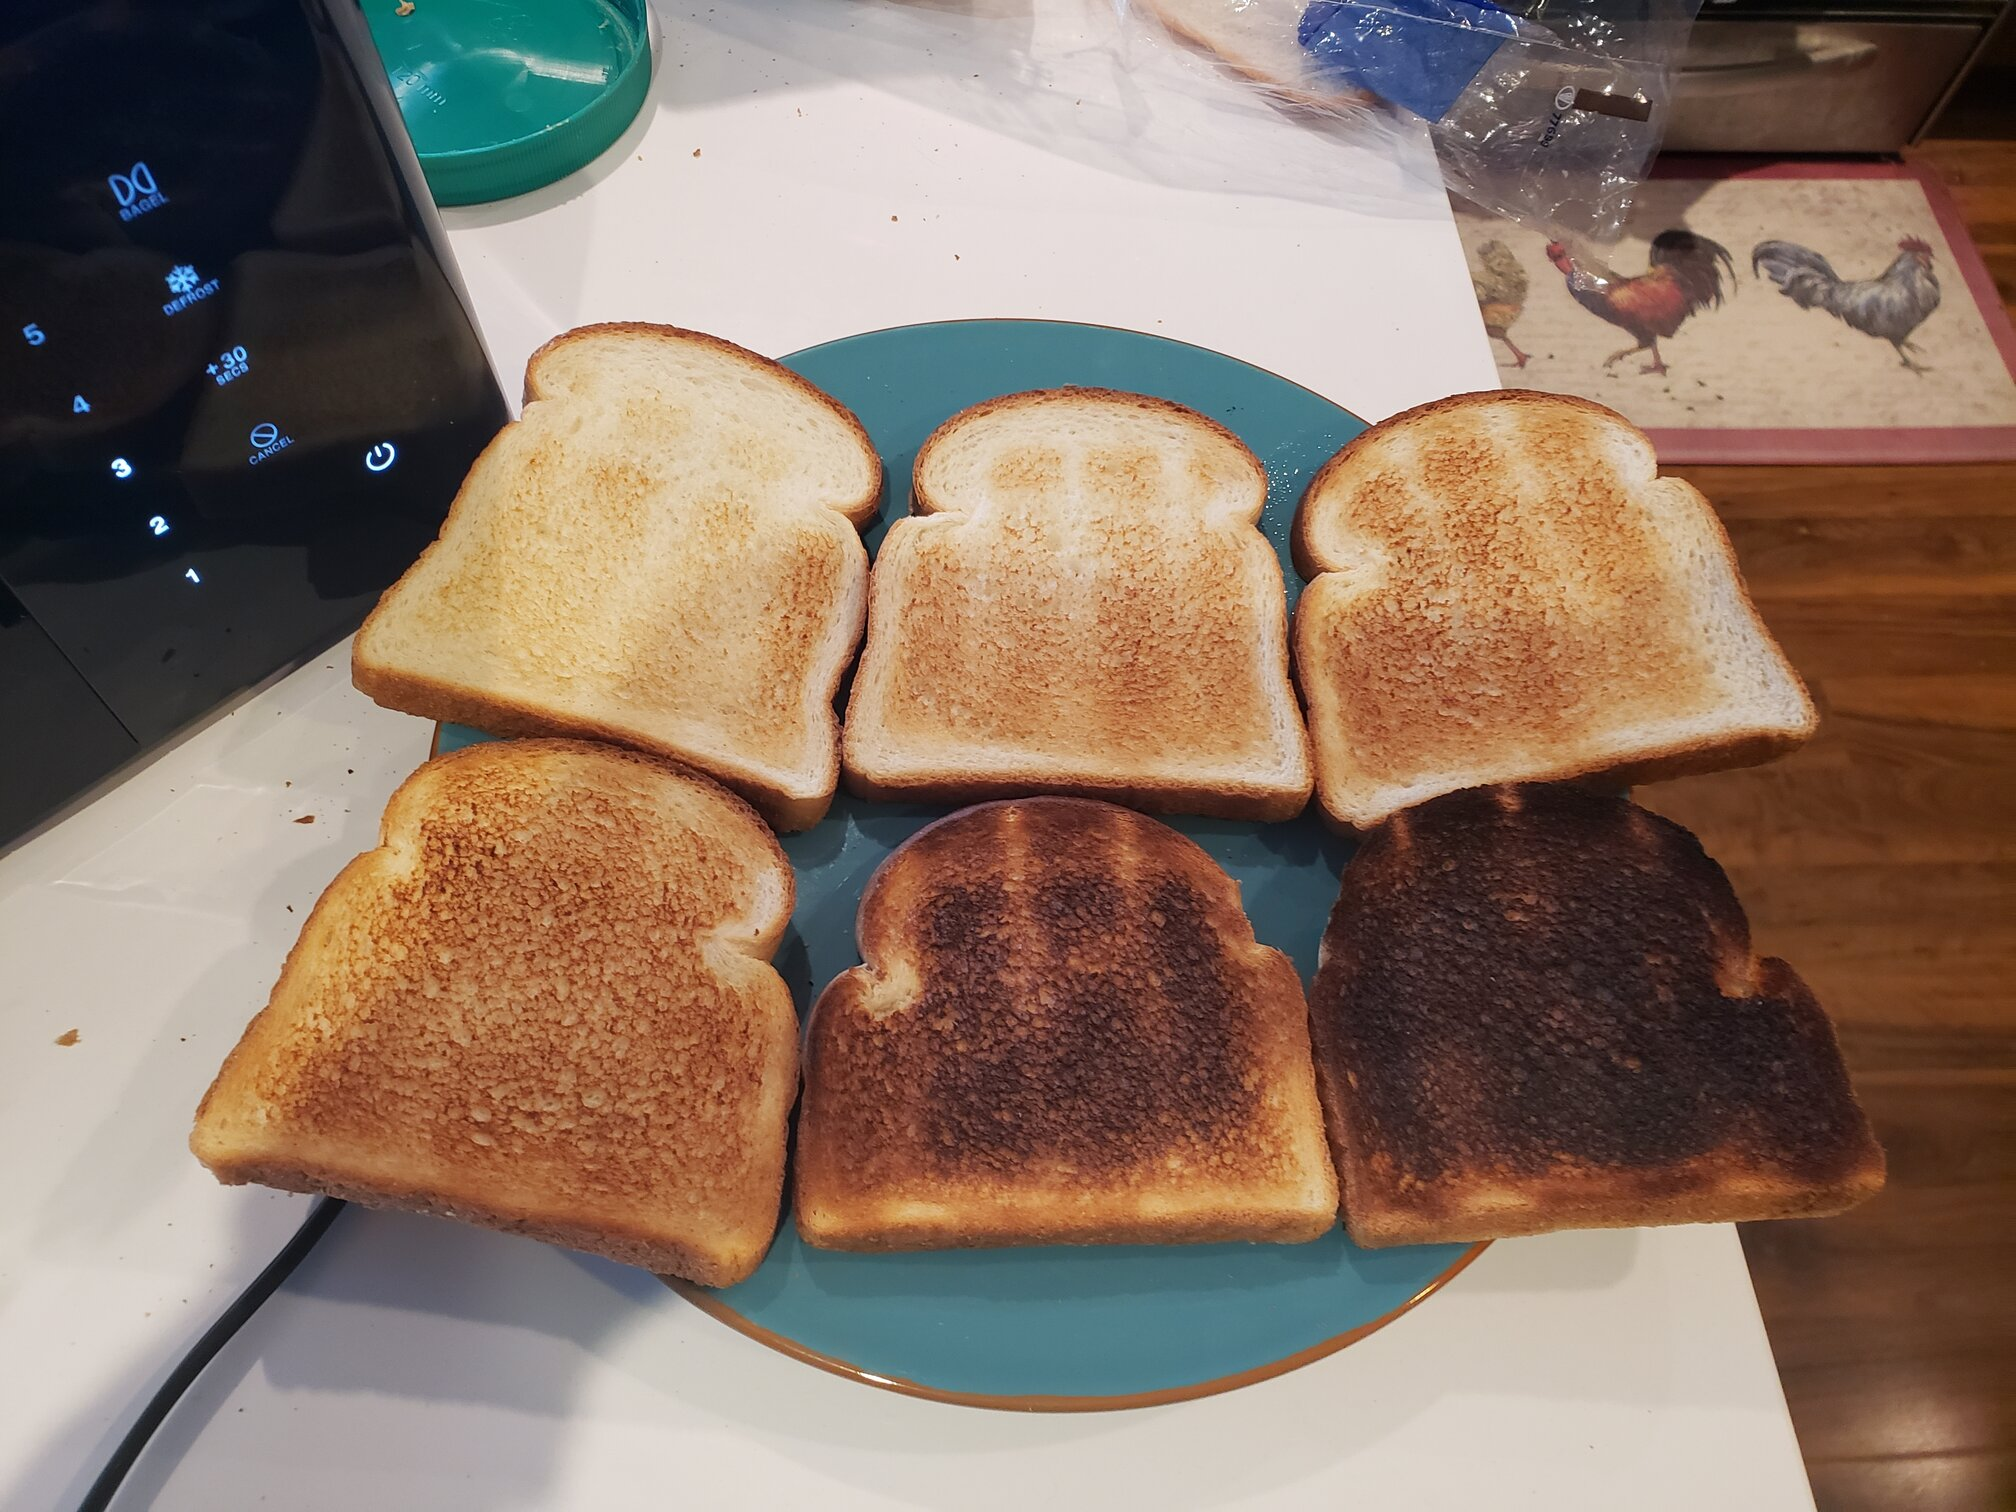 image a rainbow of toast, 1 for each darkness level